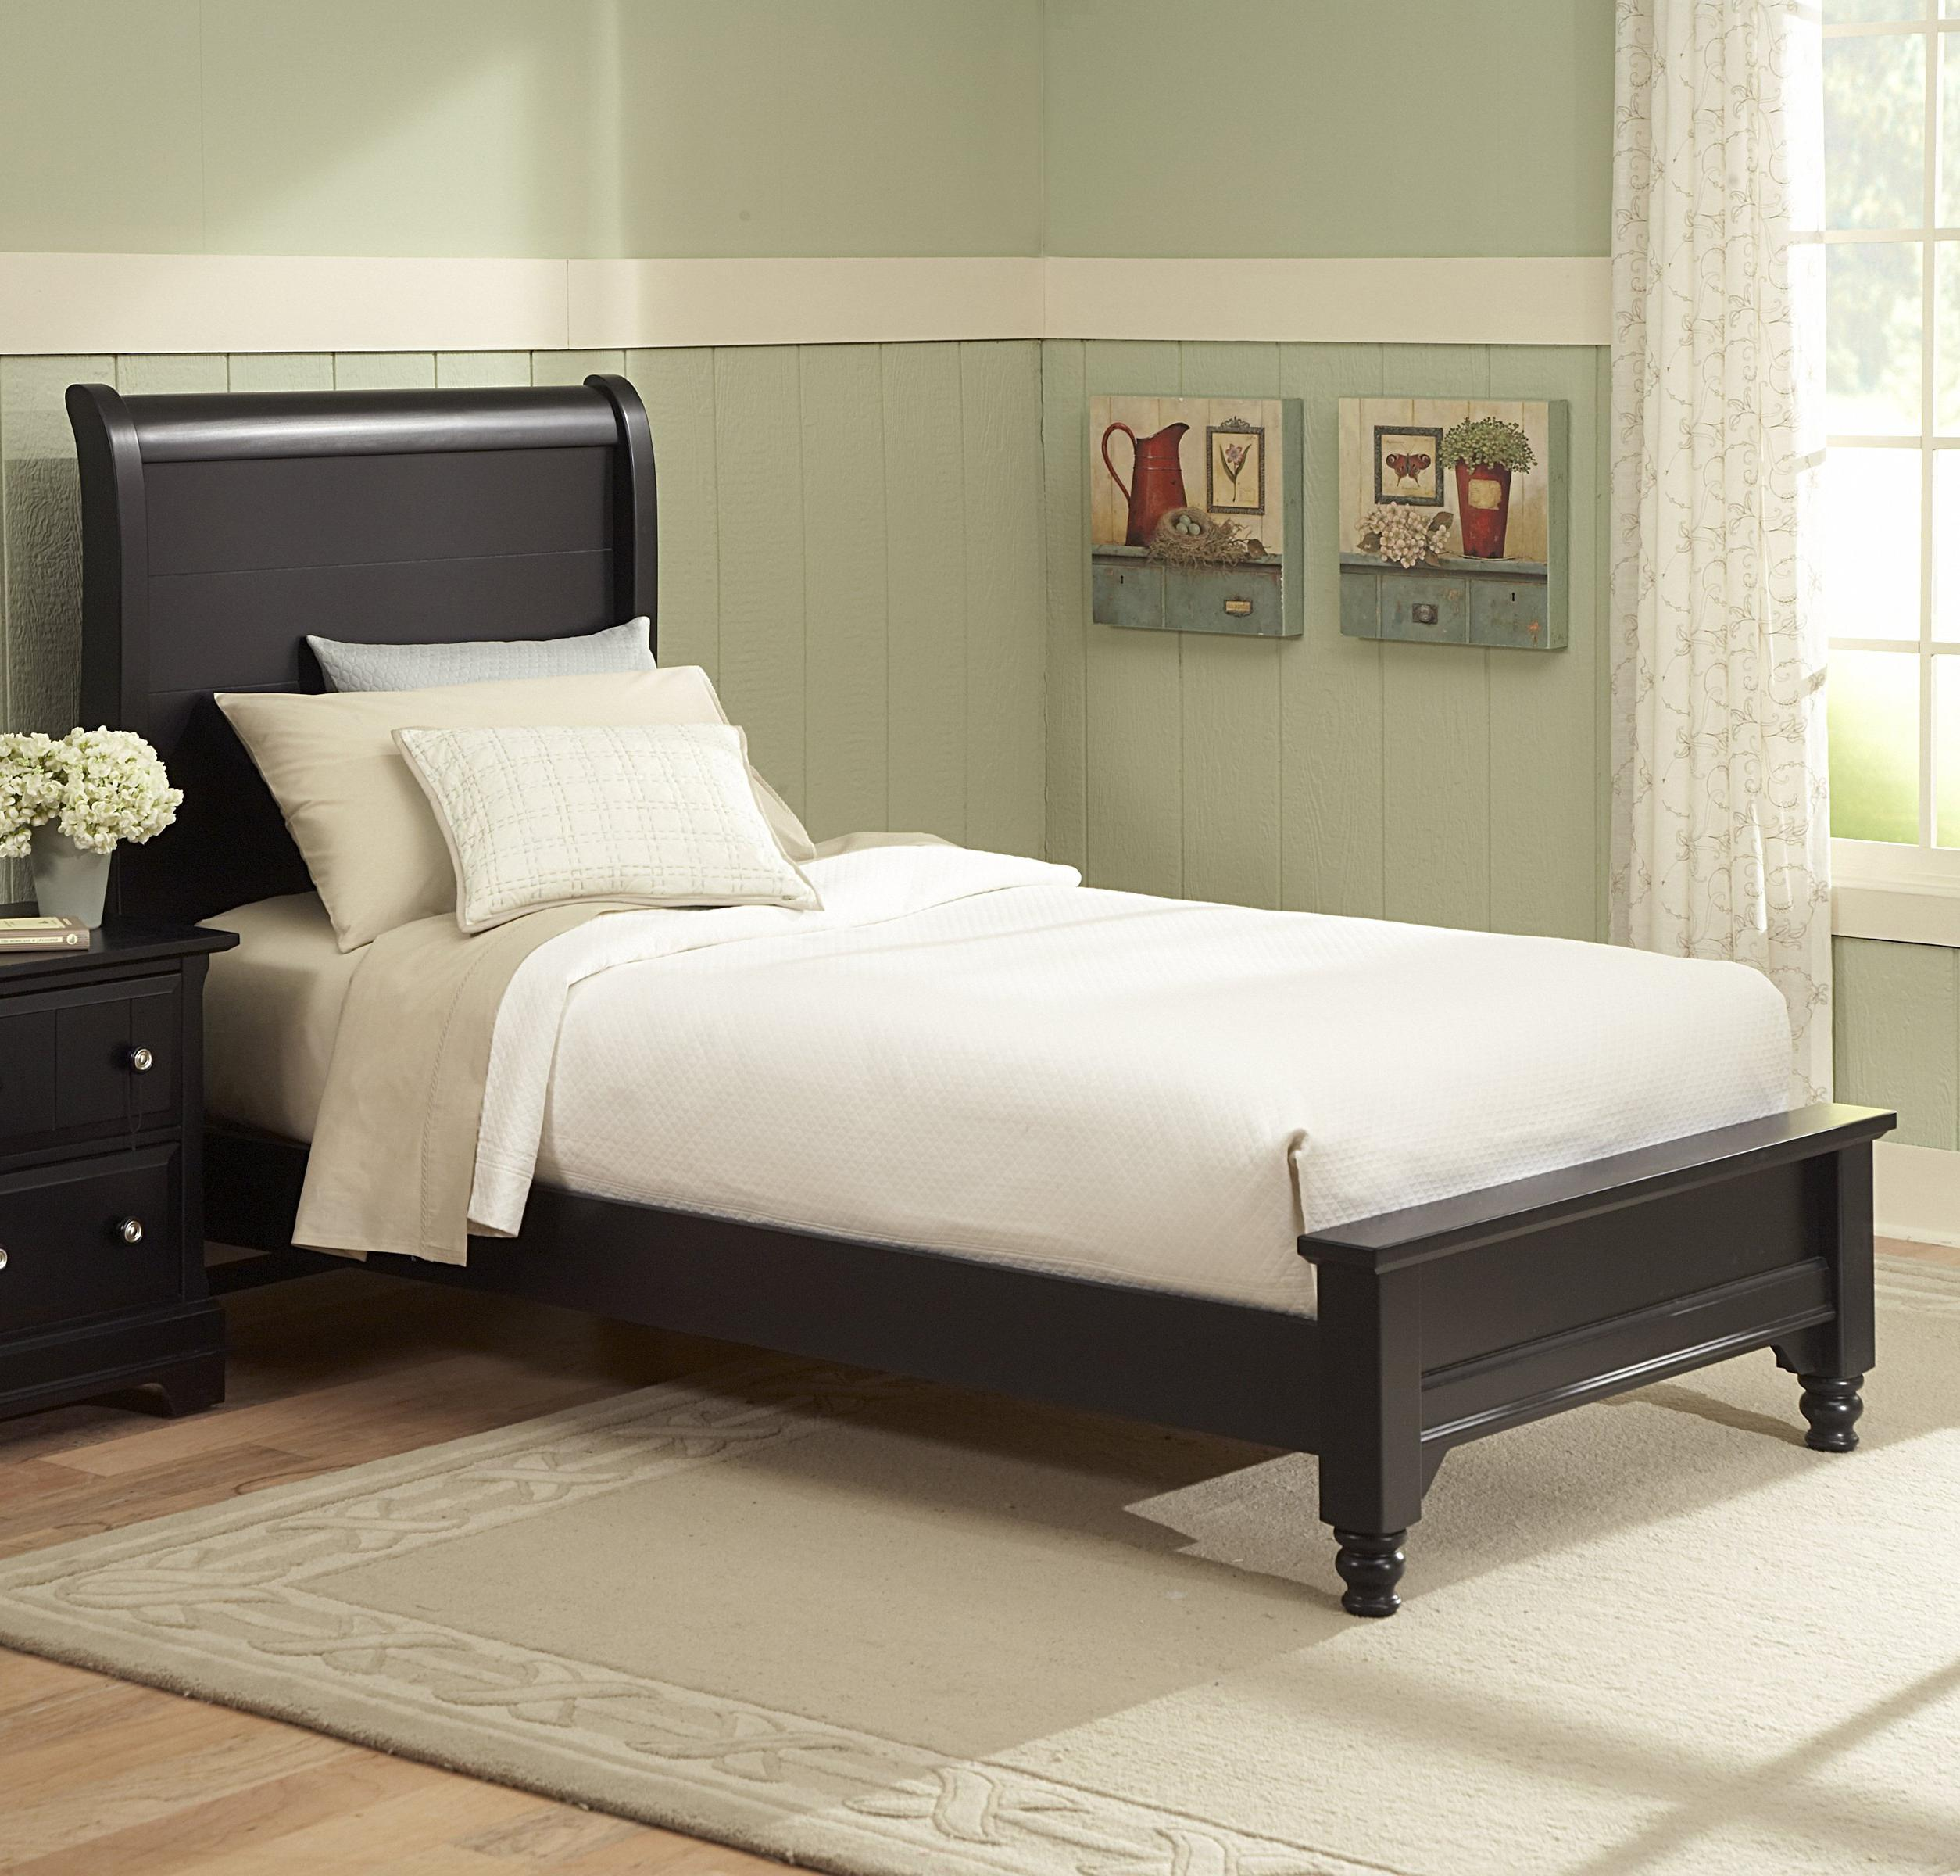 Vaughan Bassett Cottage Twin Sleigh Bed w/ Low Footboard - Item Number: BB16-331+133+900